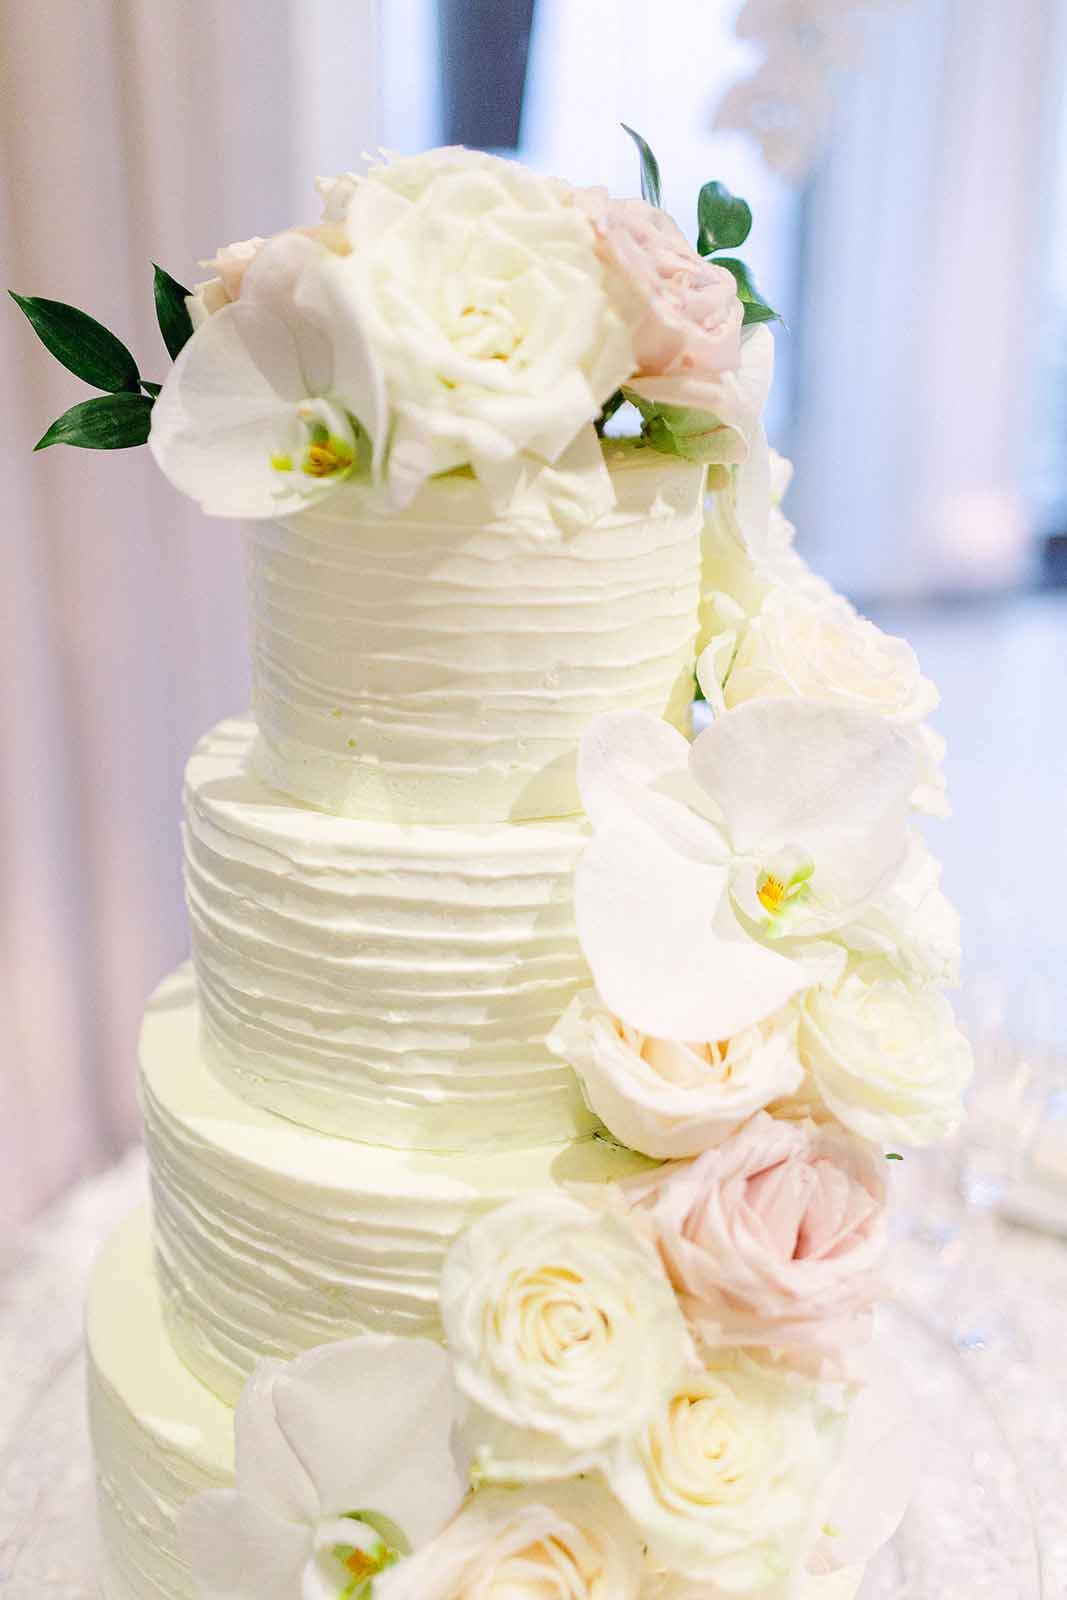 White tiered wedding cake with a waterfall of fresh orchids and roses cascading down it